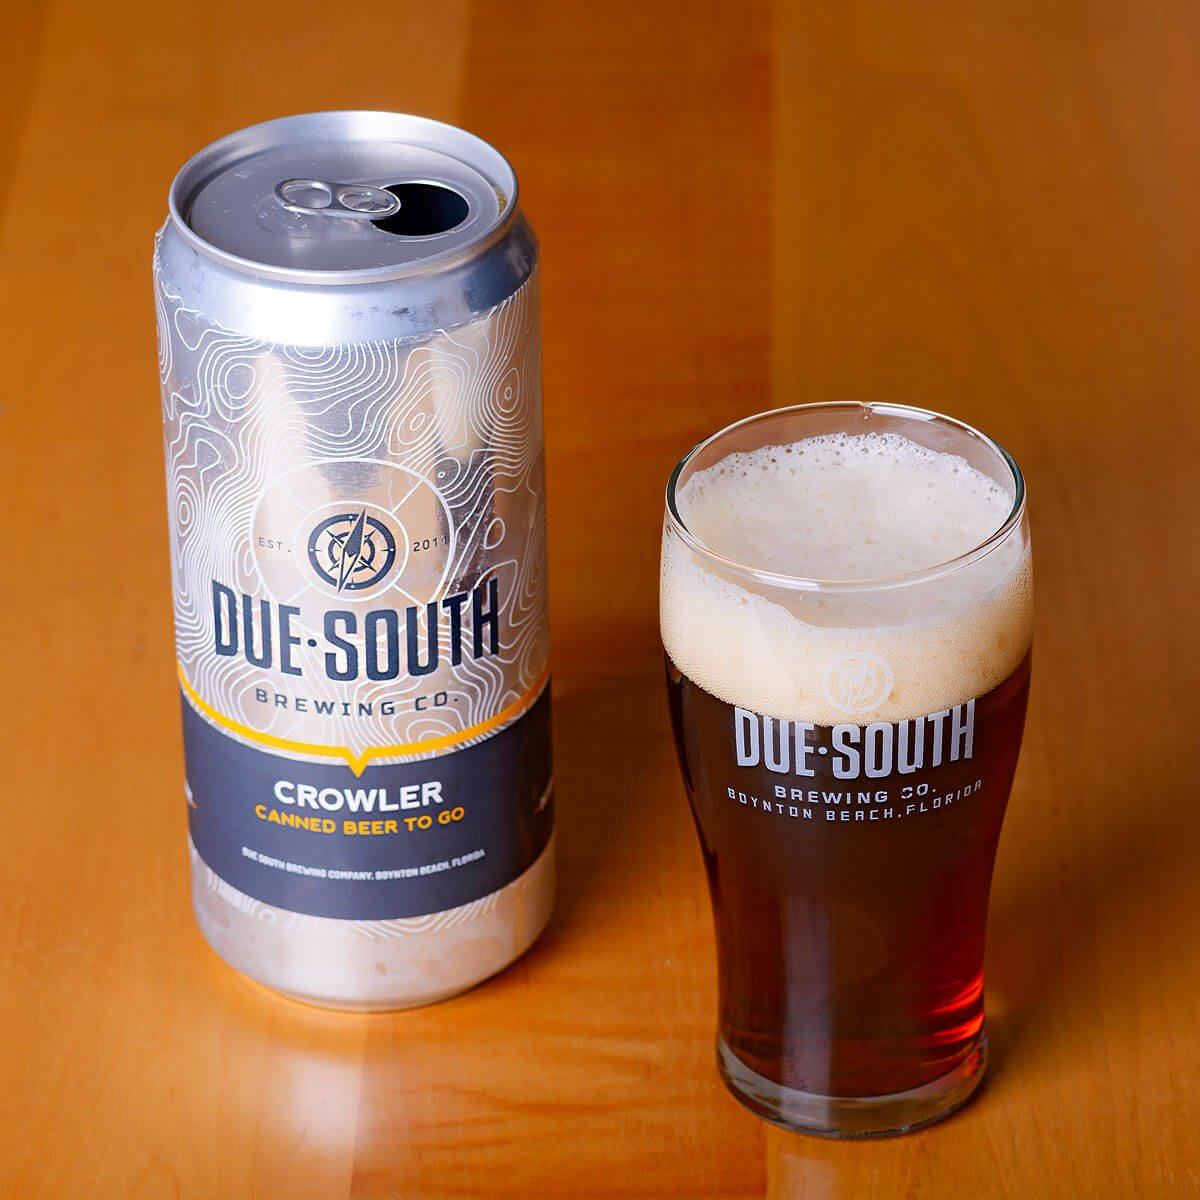 Curse Of The Irish Red, an Irish-style Red Ale by Due South Brewing Co.